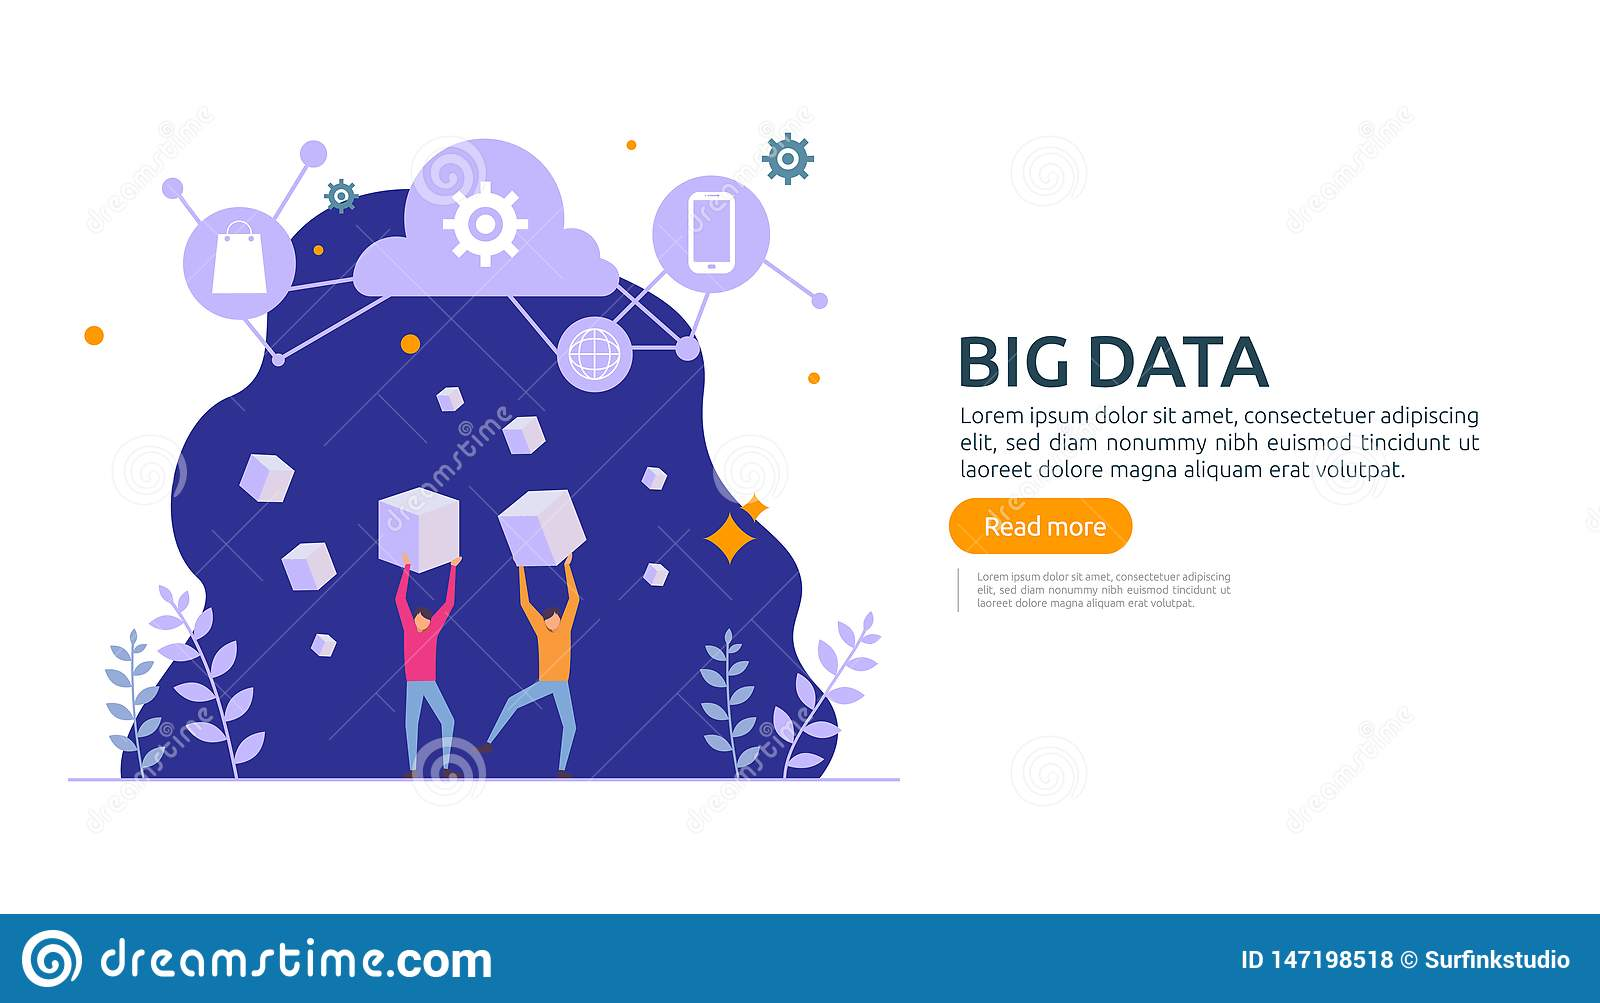 big data and analysis processing concept landing page template. cloud database service, server center room rack with interacting